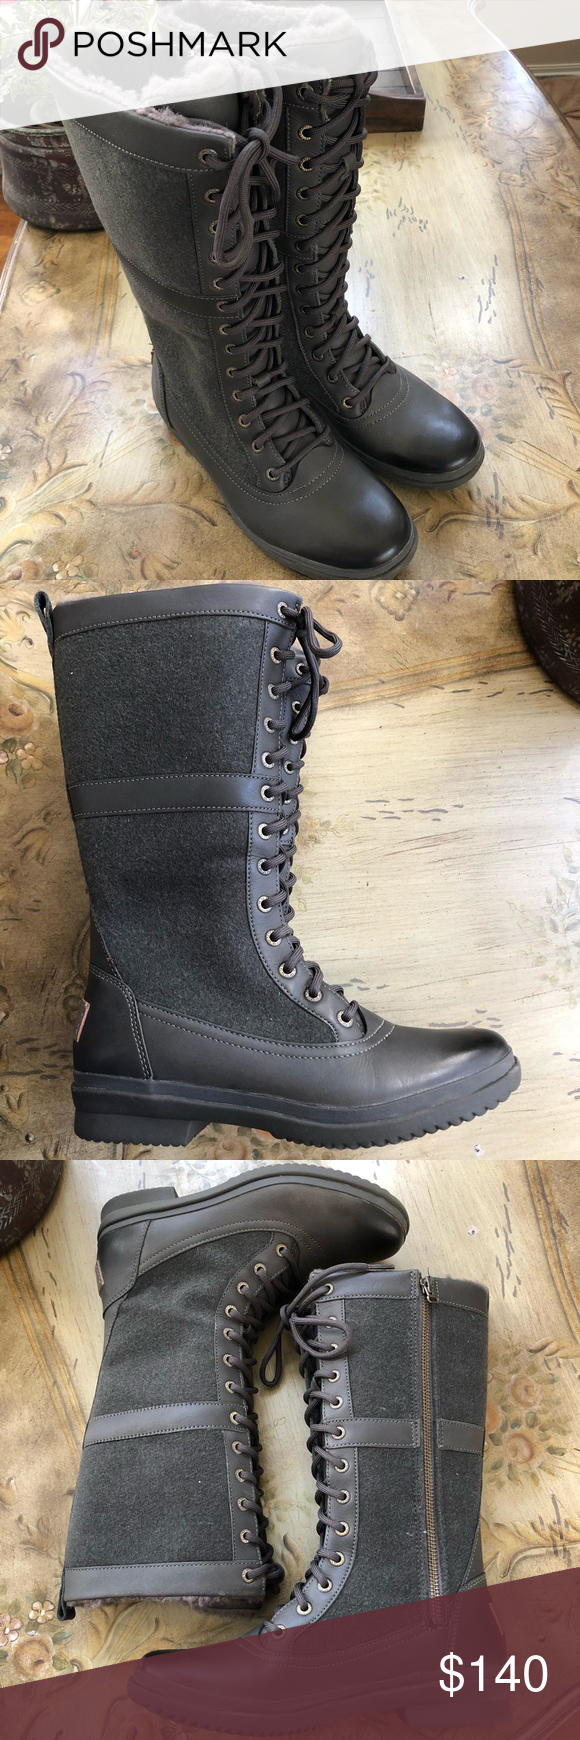 0c26876d003 UGG Elvia Tall Lace-Up Waterproof Snow Boot Rainy days are no match ...